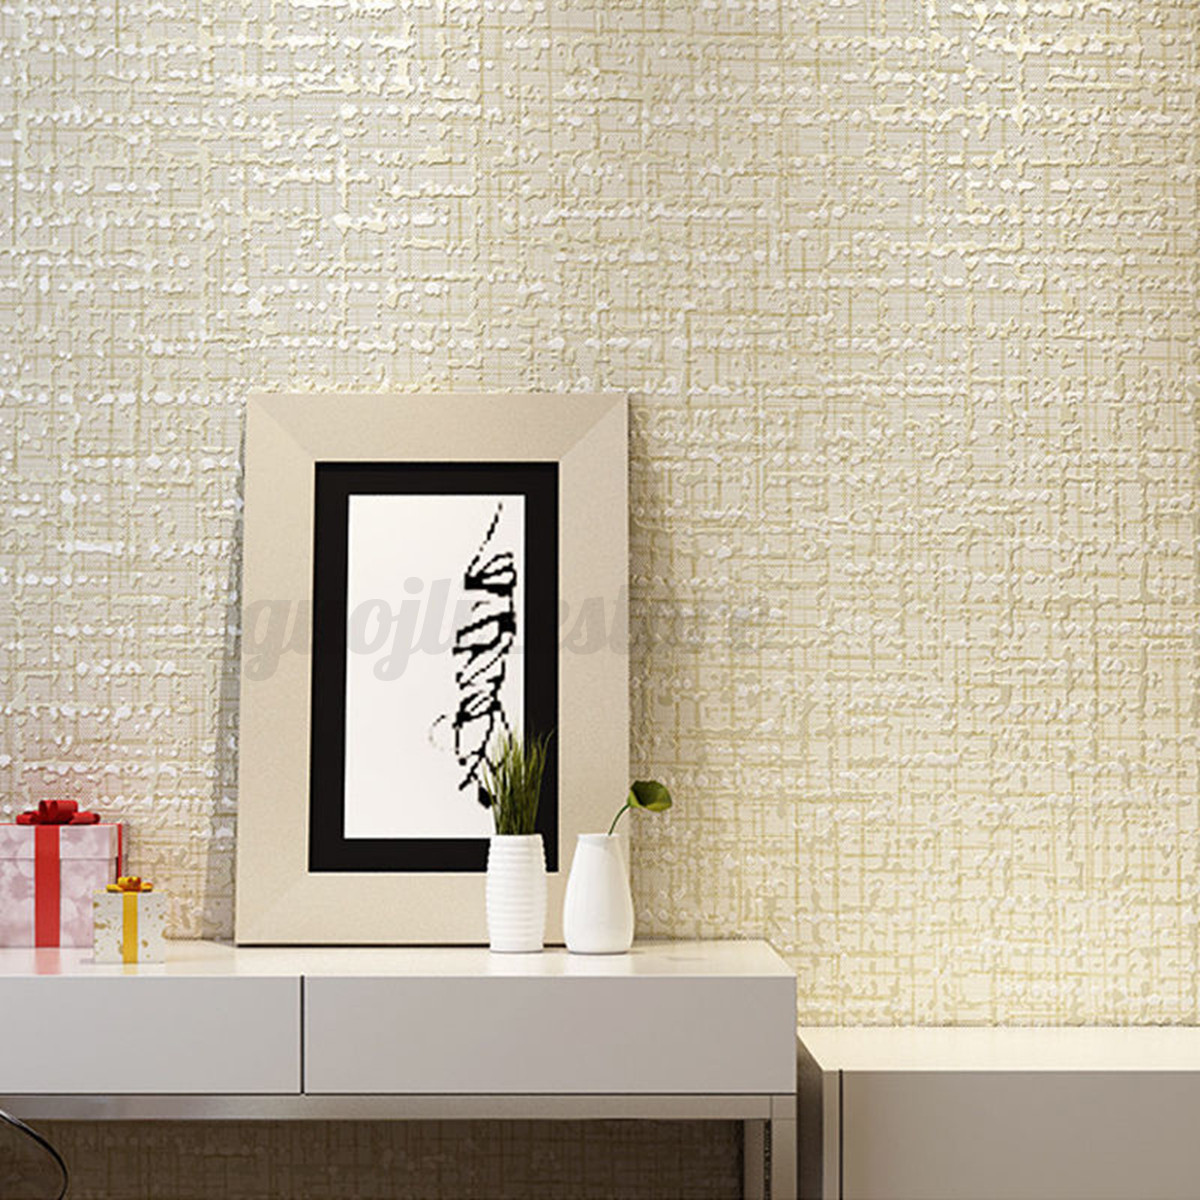 Bedroom Plain Wall Minimalist Concept Minimalist Solid Plain Non Woven Wallpaper Flocking Particles Bedroom